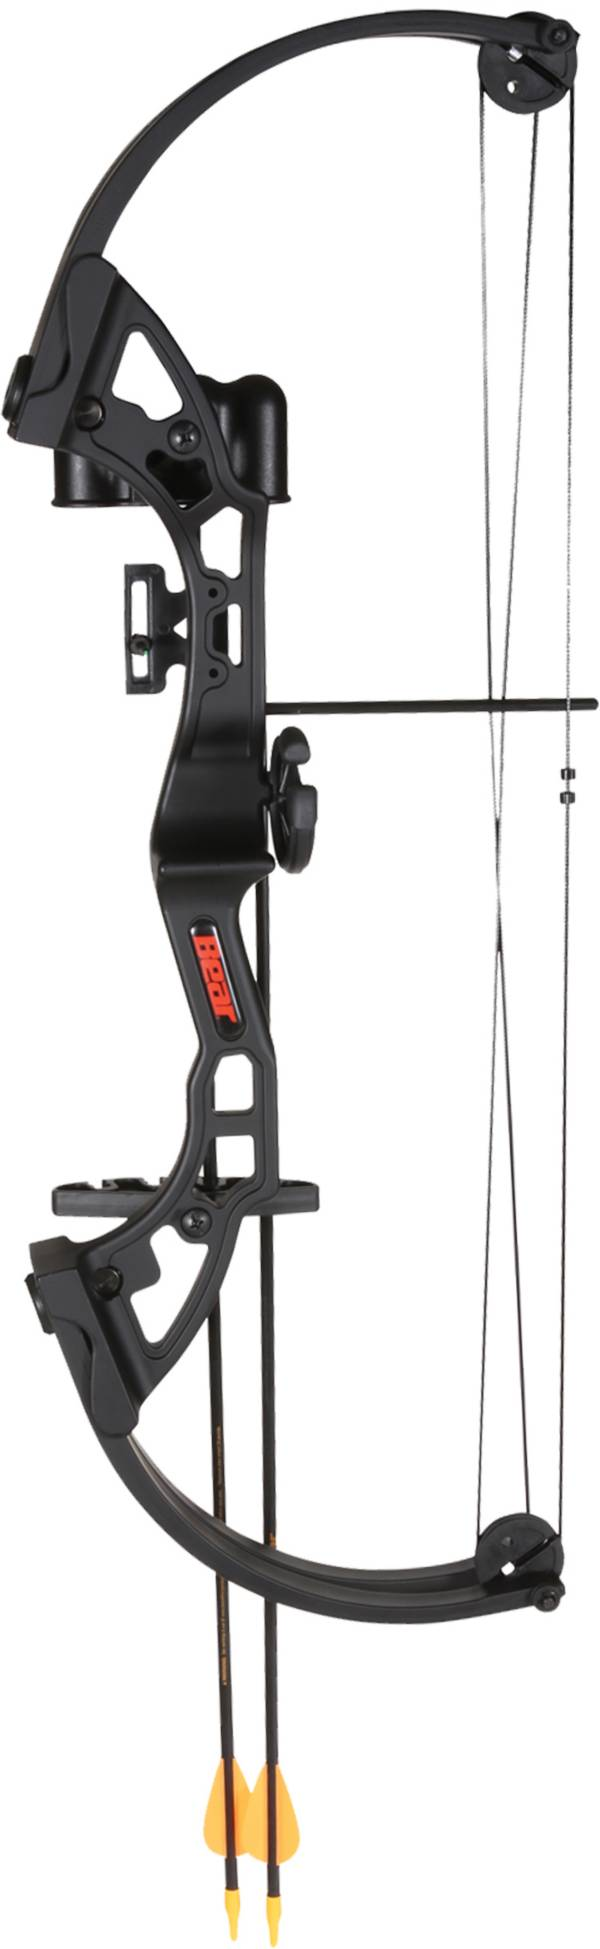 Bear Archery Youth Brave Compound Bow Package product image